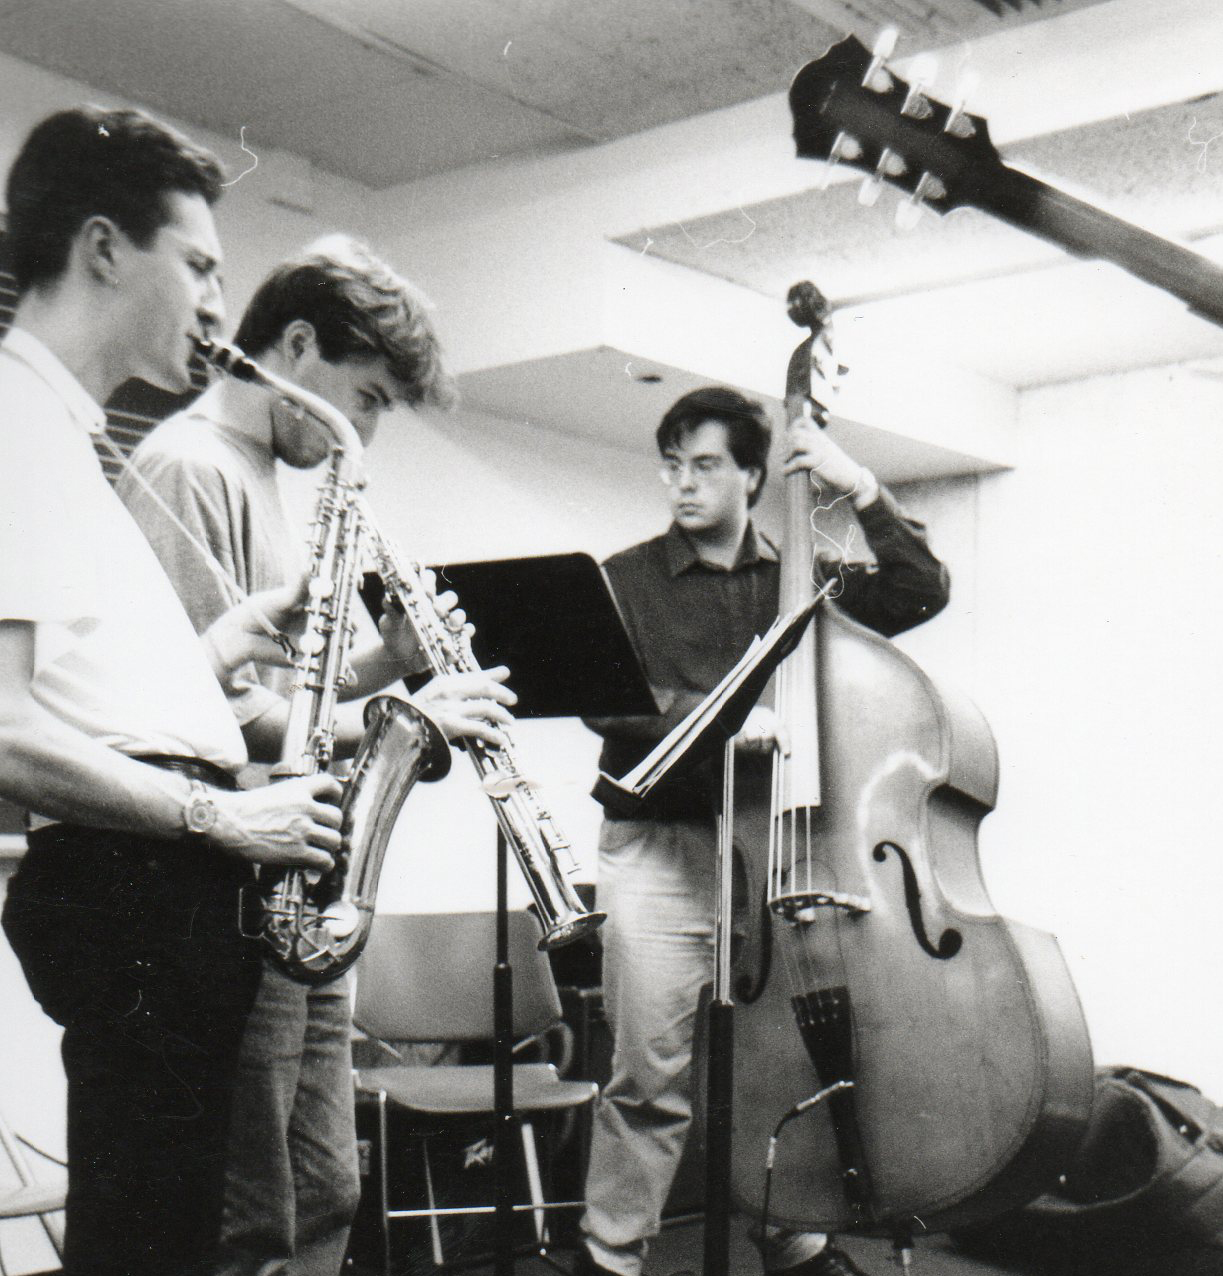 First band at Berklee, 1992